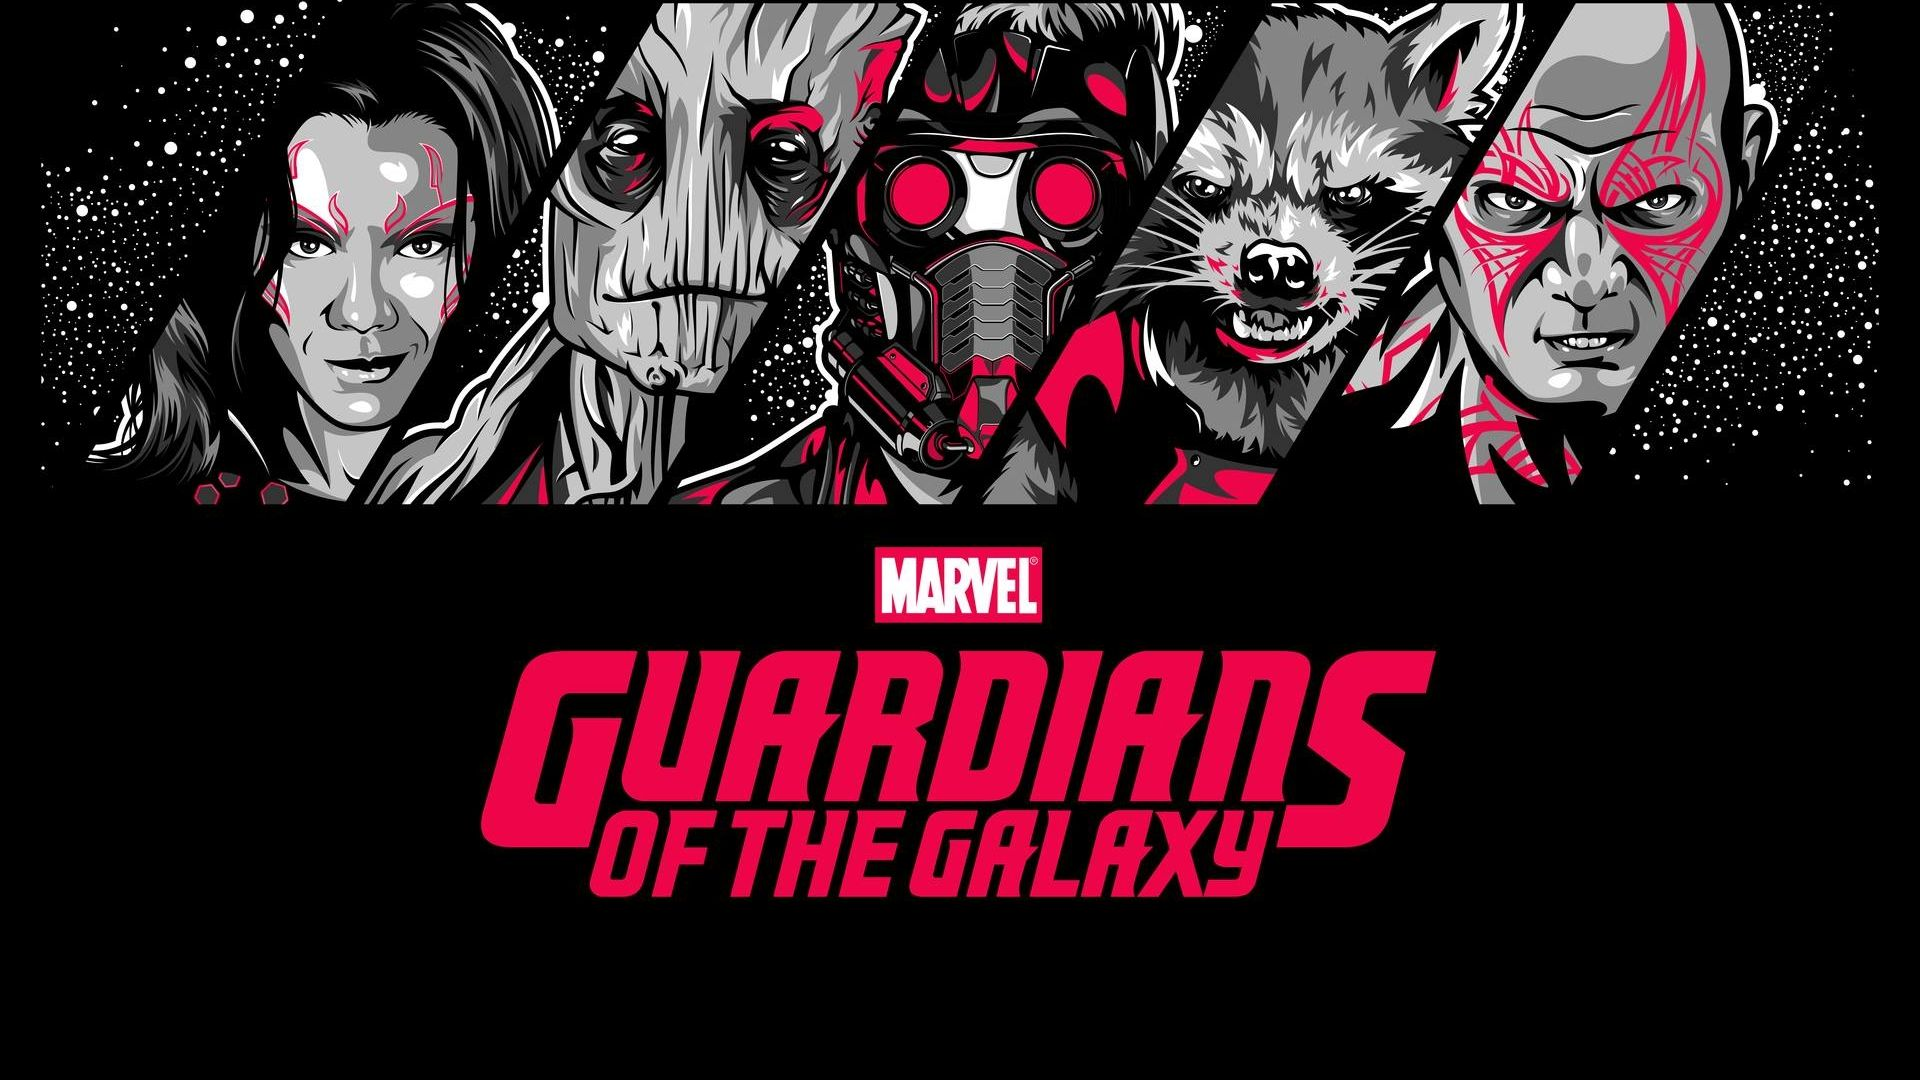 Guardians Of The Galaxy Galaxy Comics Guardians Of The Galaxy Marvel Wallpaper